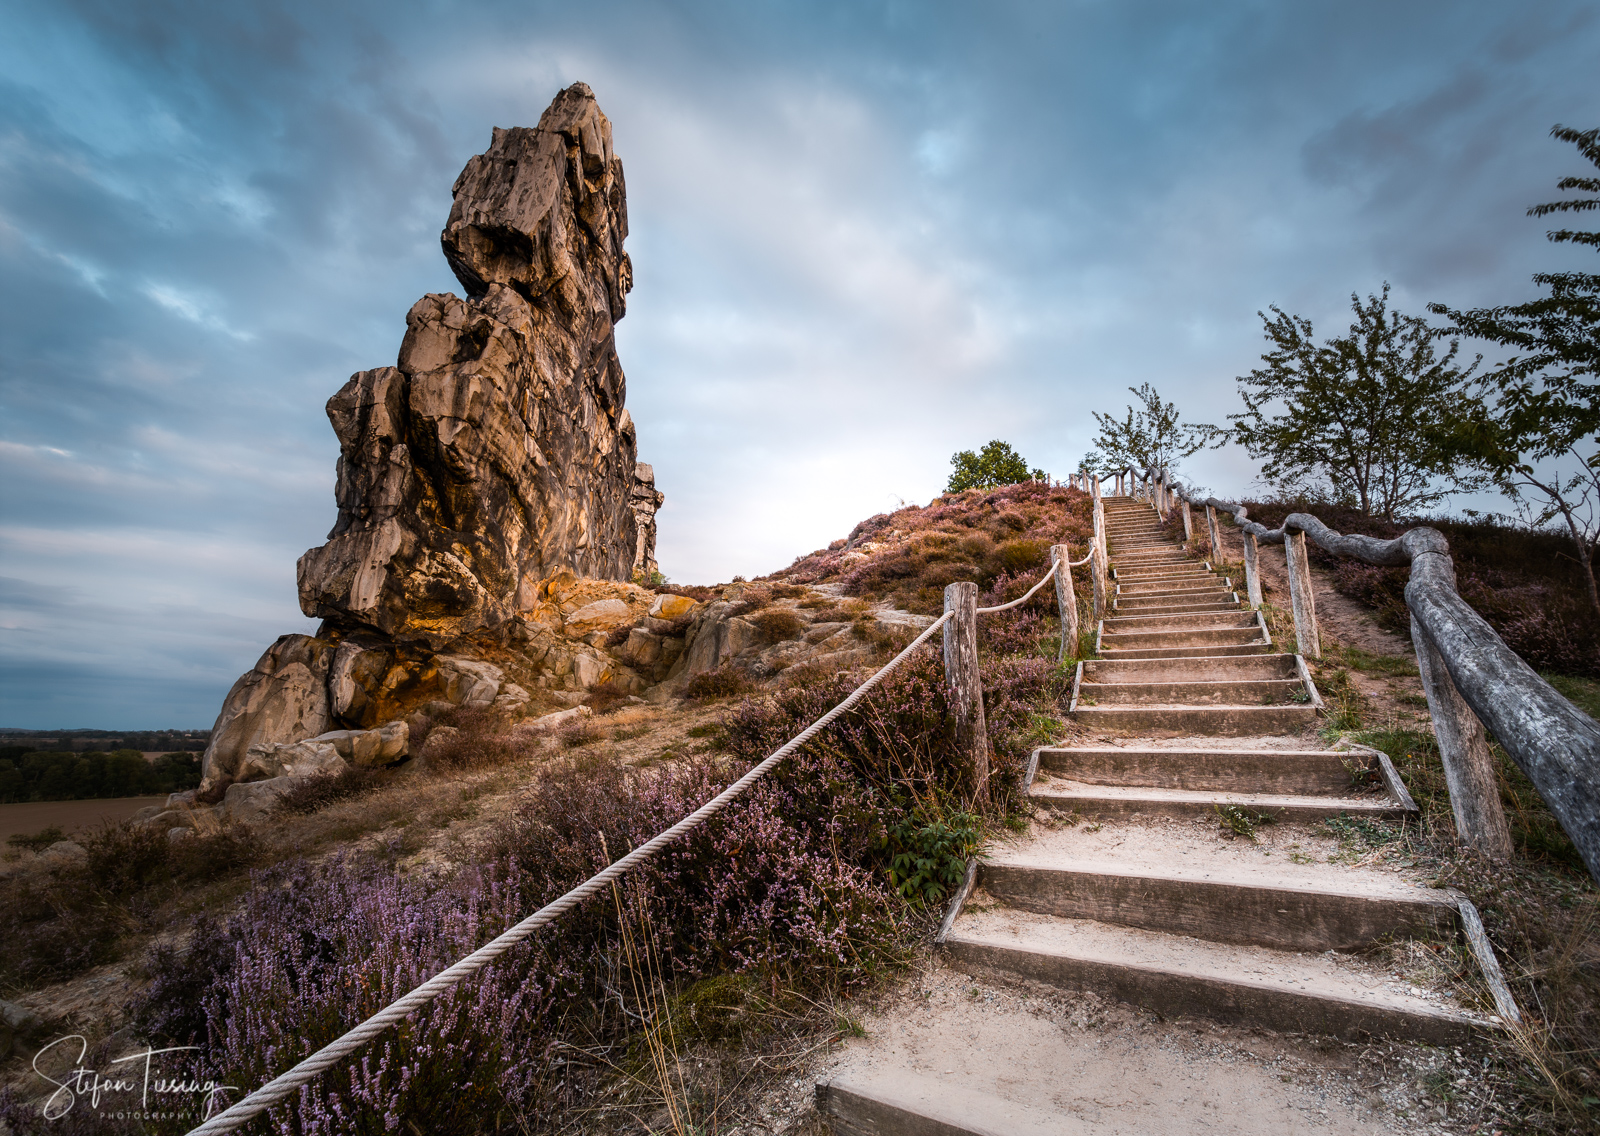 Steps to the Devil - Teufelsmauer near Thale, Germany